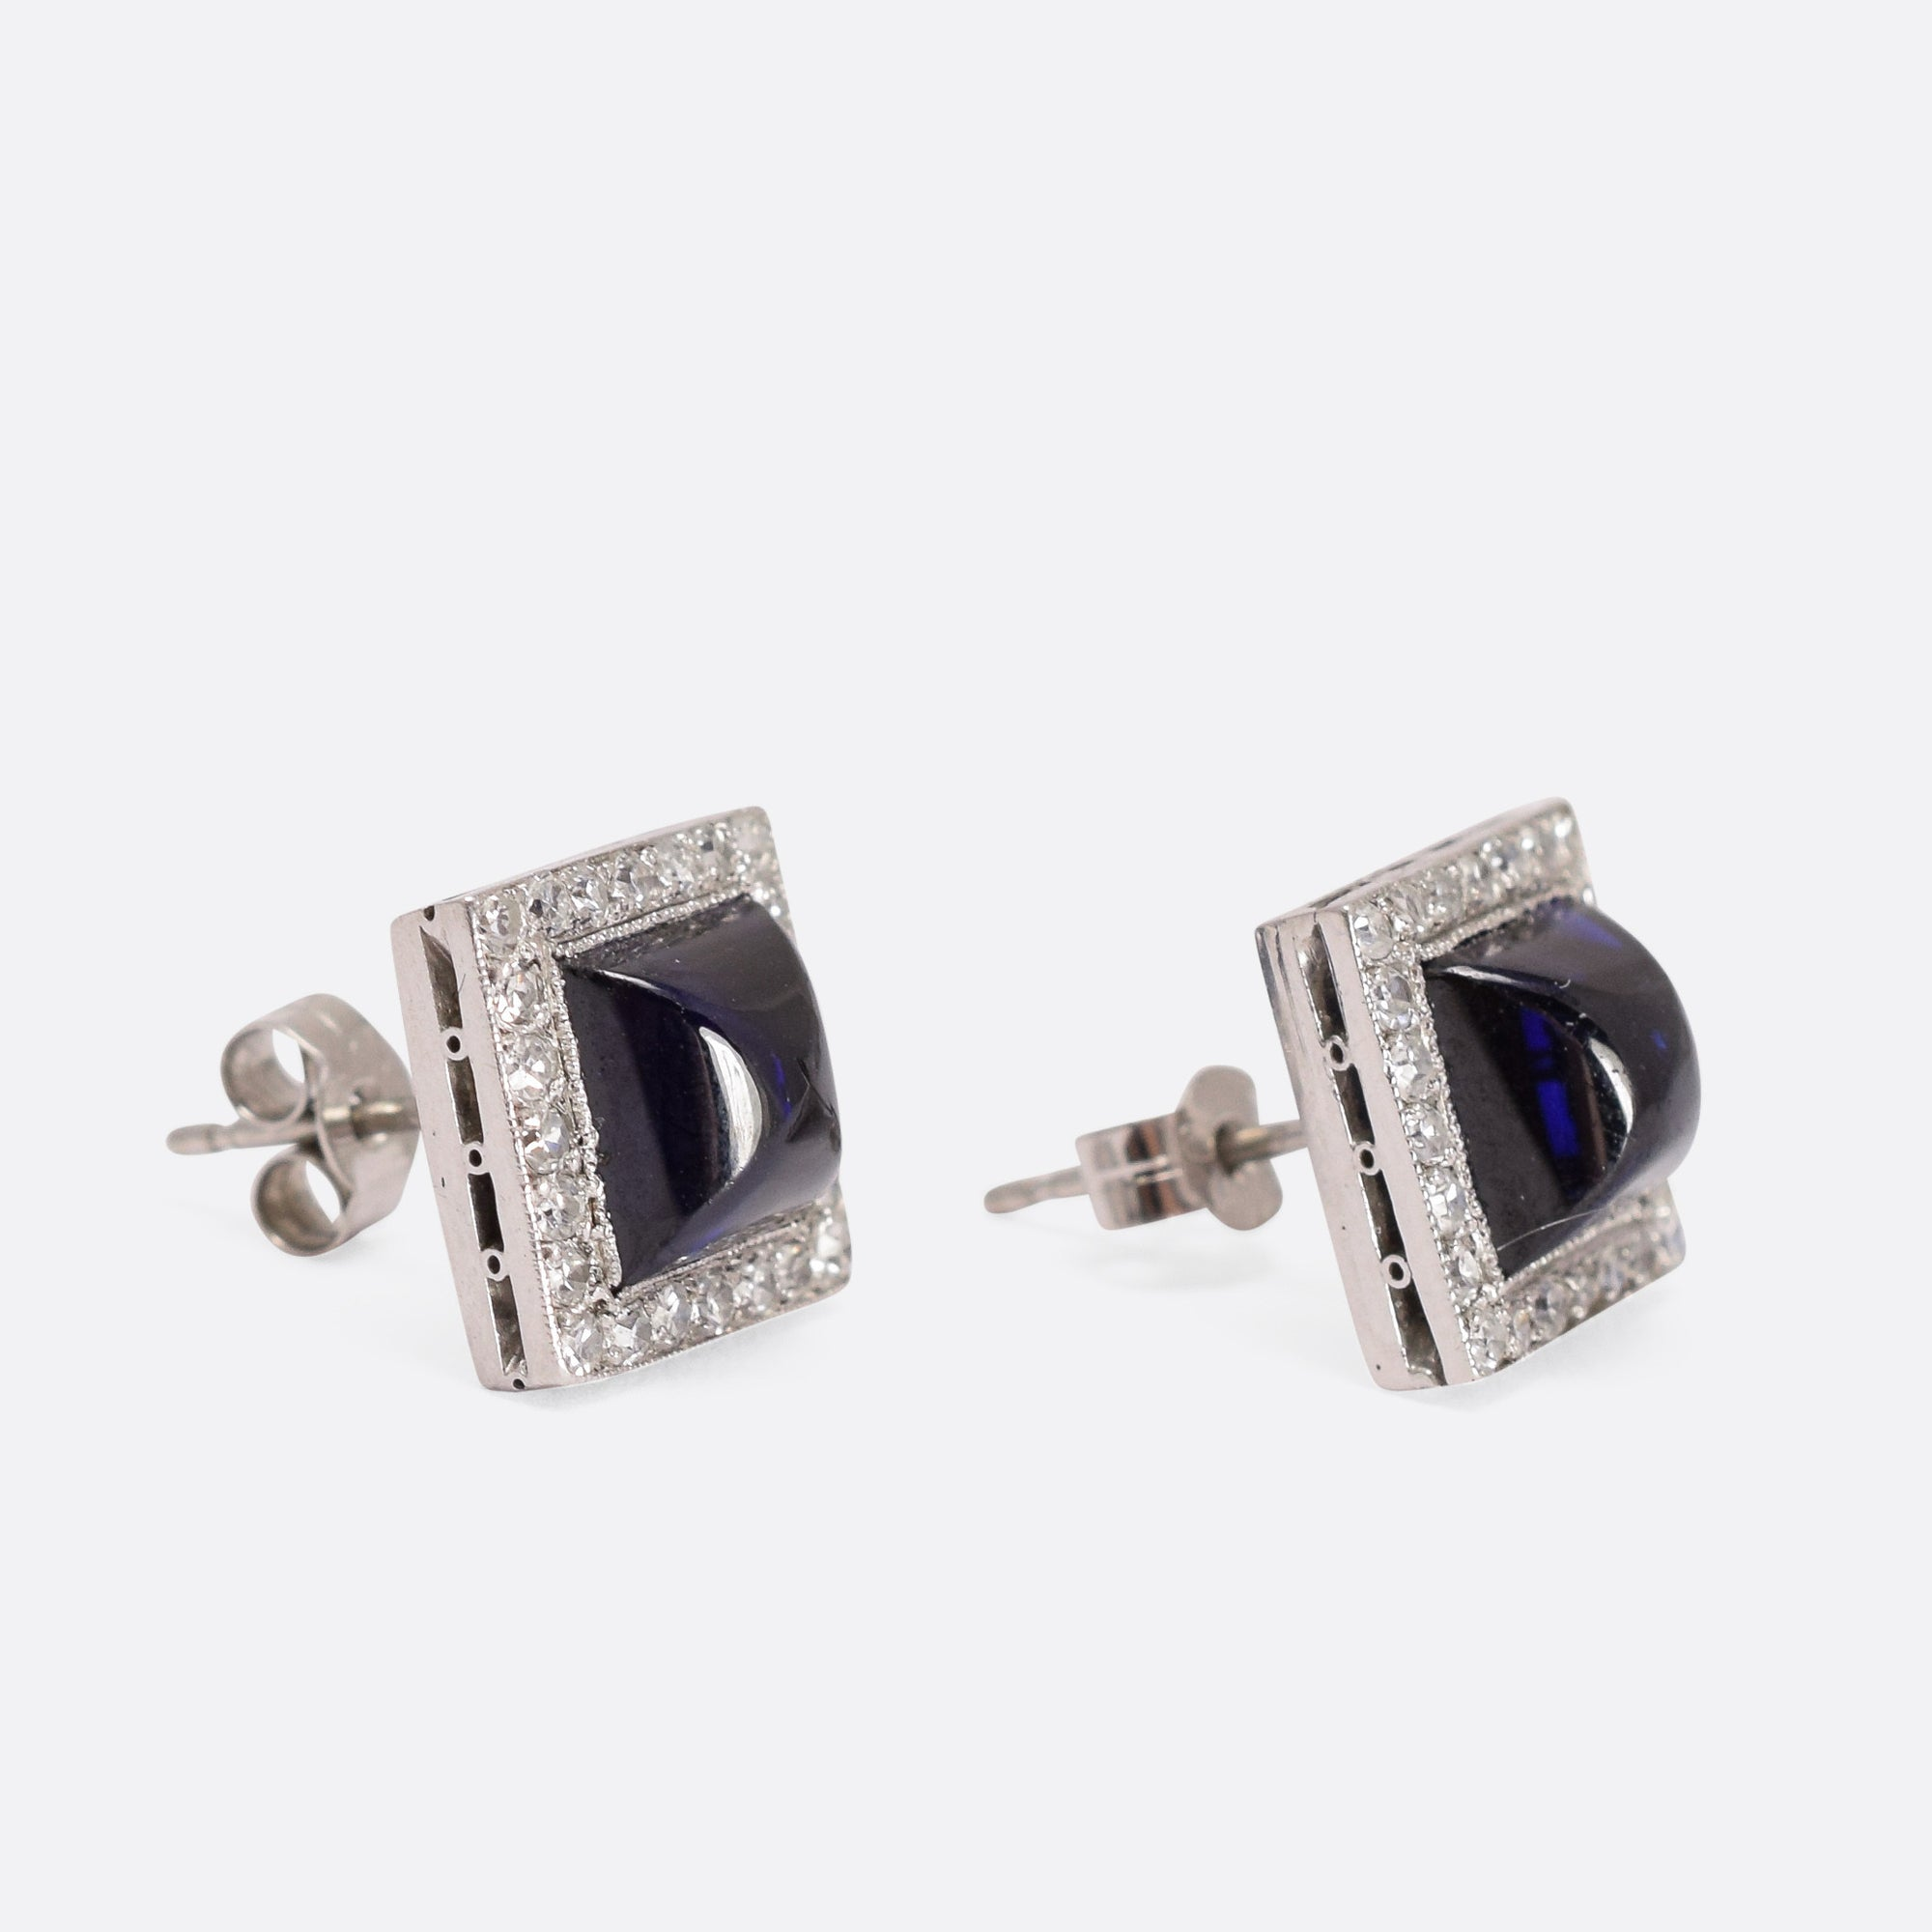 antique tarr smith lohmeyer pin platinum haan earrings stud diamond diane